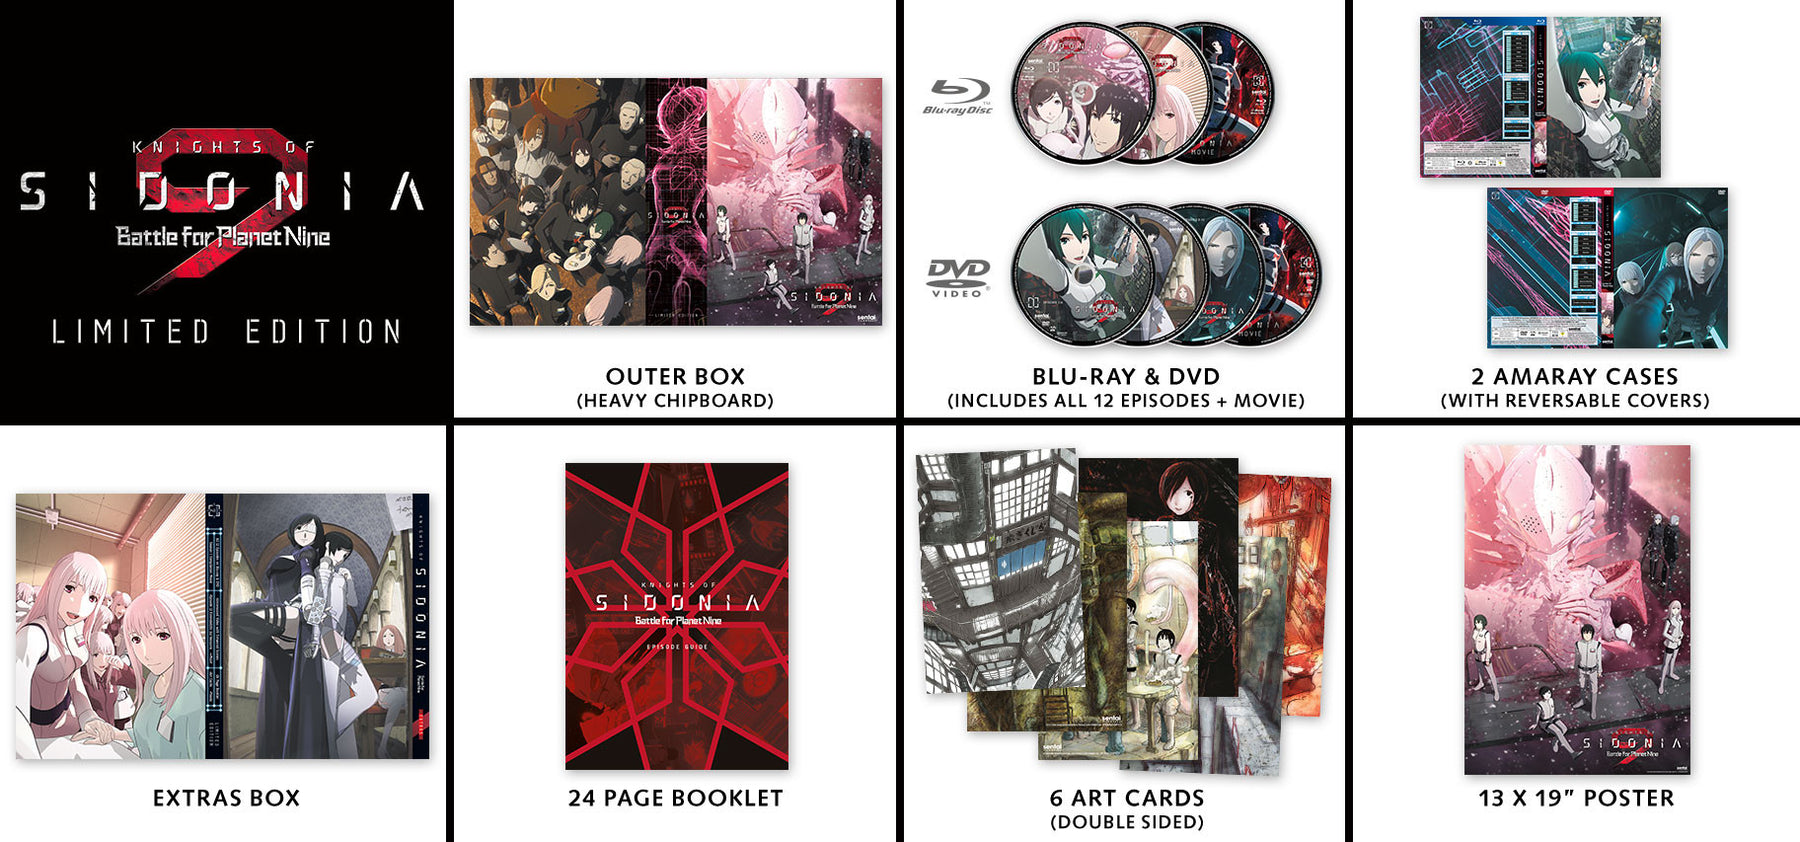 Knights of Sidonia Season 2: Battle for Planet Nine Premium Box Set Contents